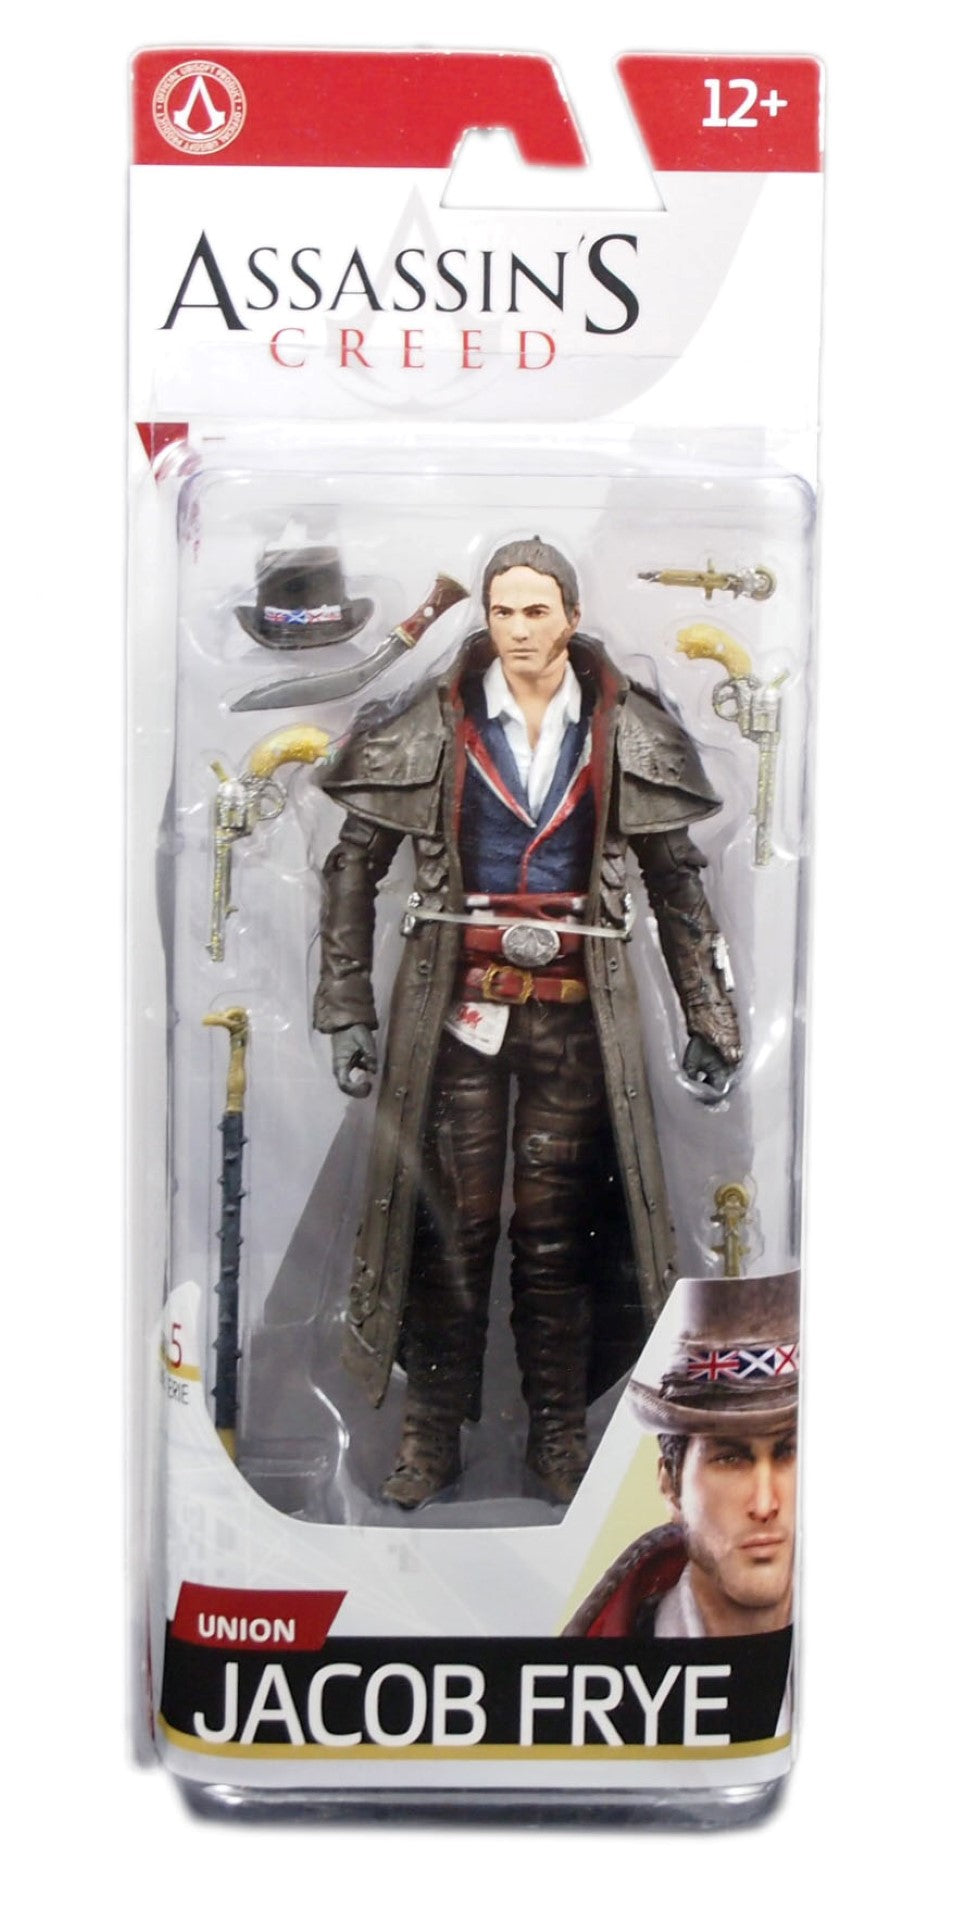 Assassin S Creed Series 5 Action Figure Union Jacob Frye Brique Braque